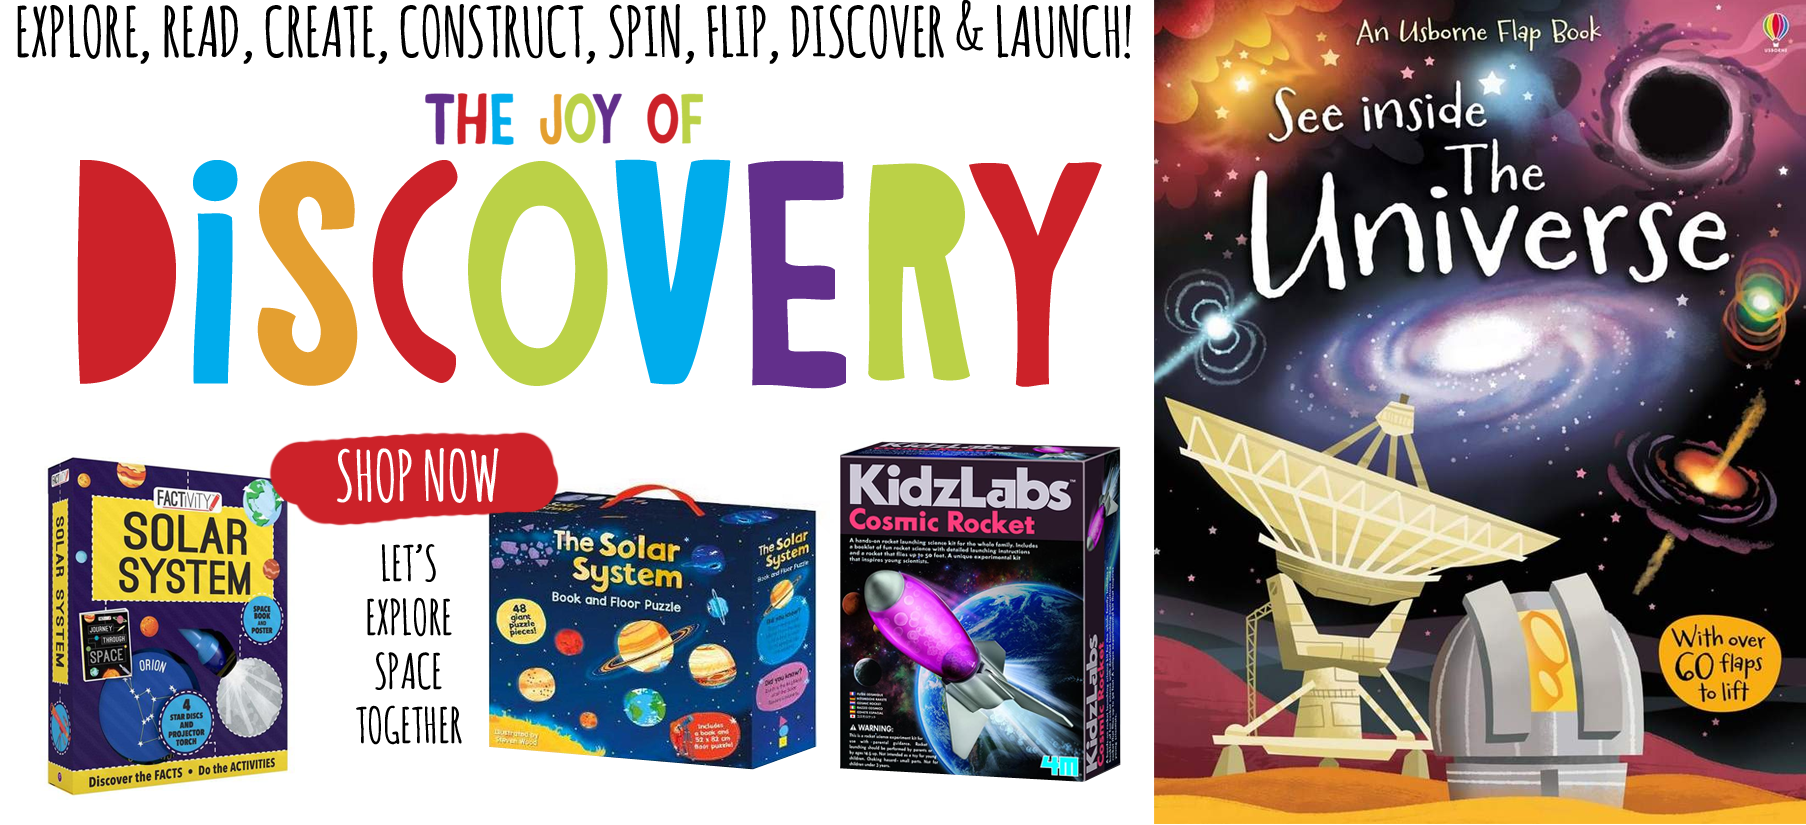 Discover awesome Space themed toys over at Curious Kids Toy Lab.  Space jigsaws, Space  books, science kits